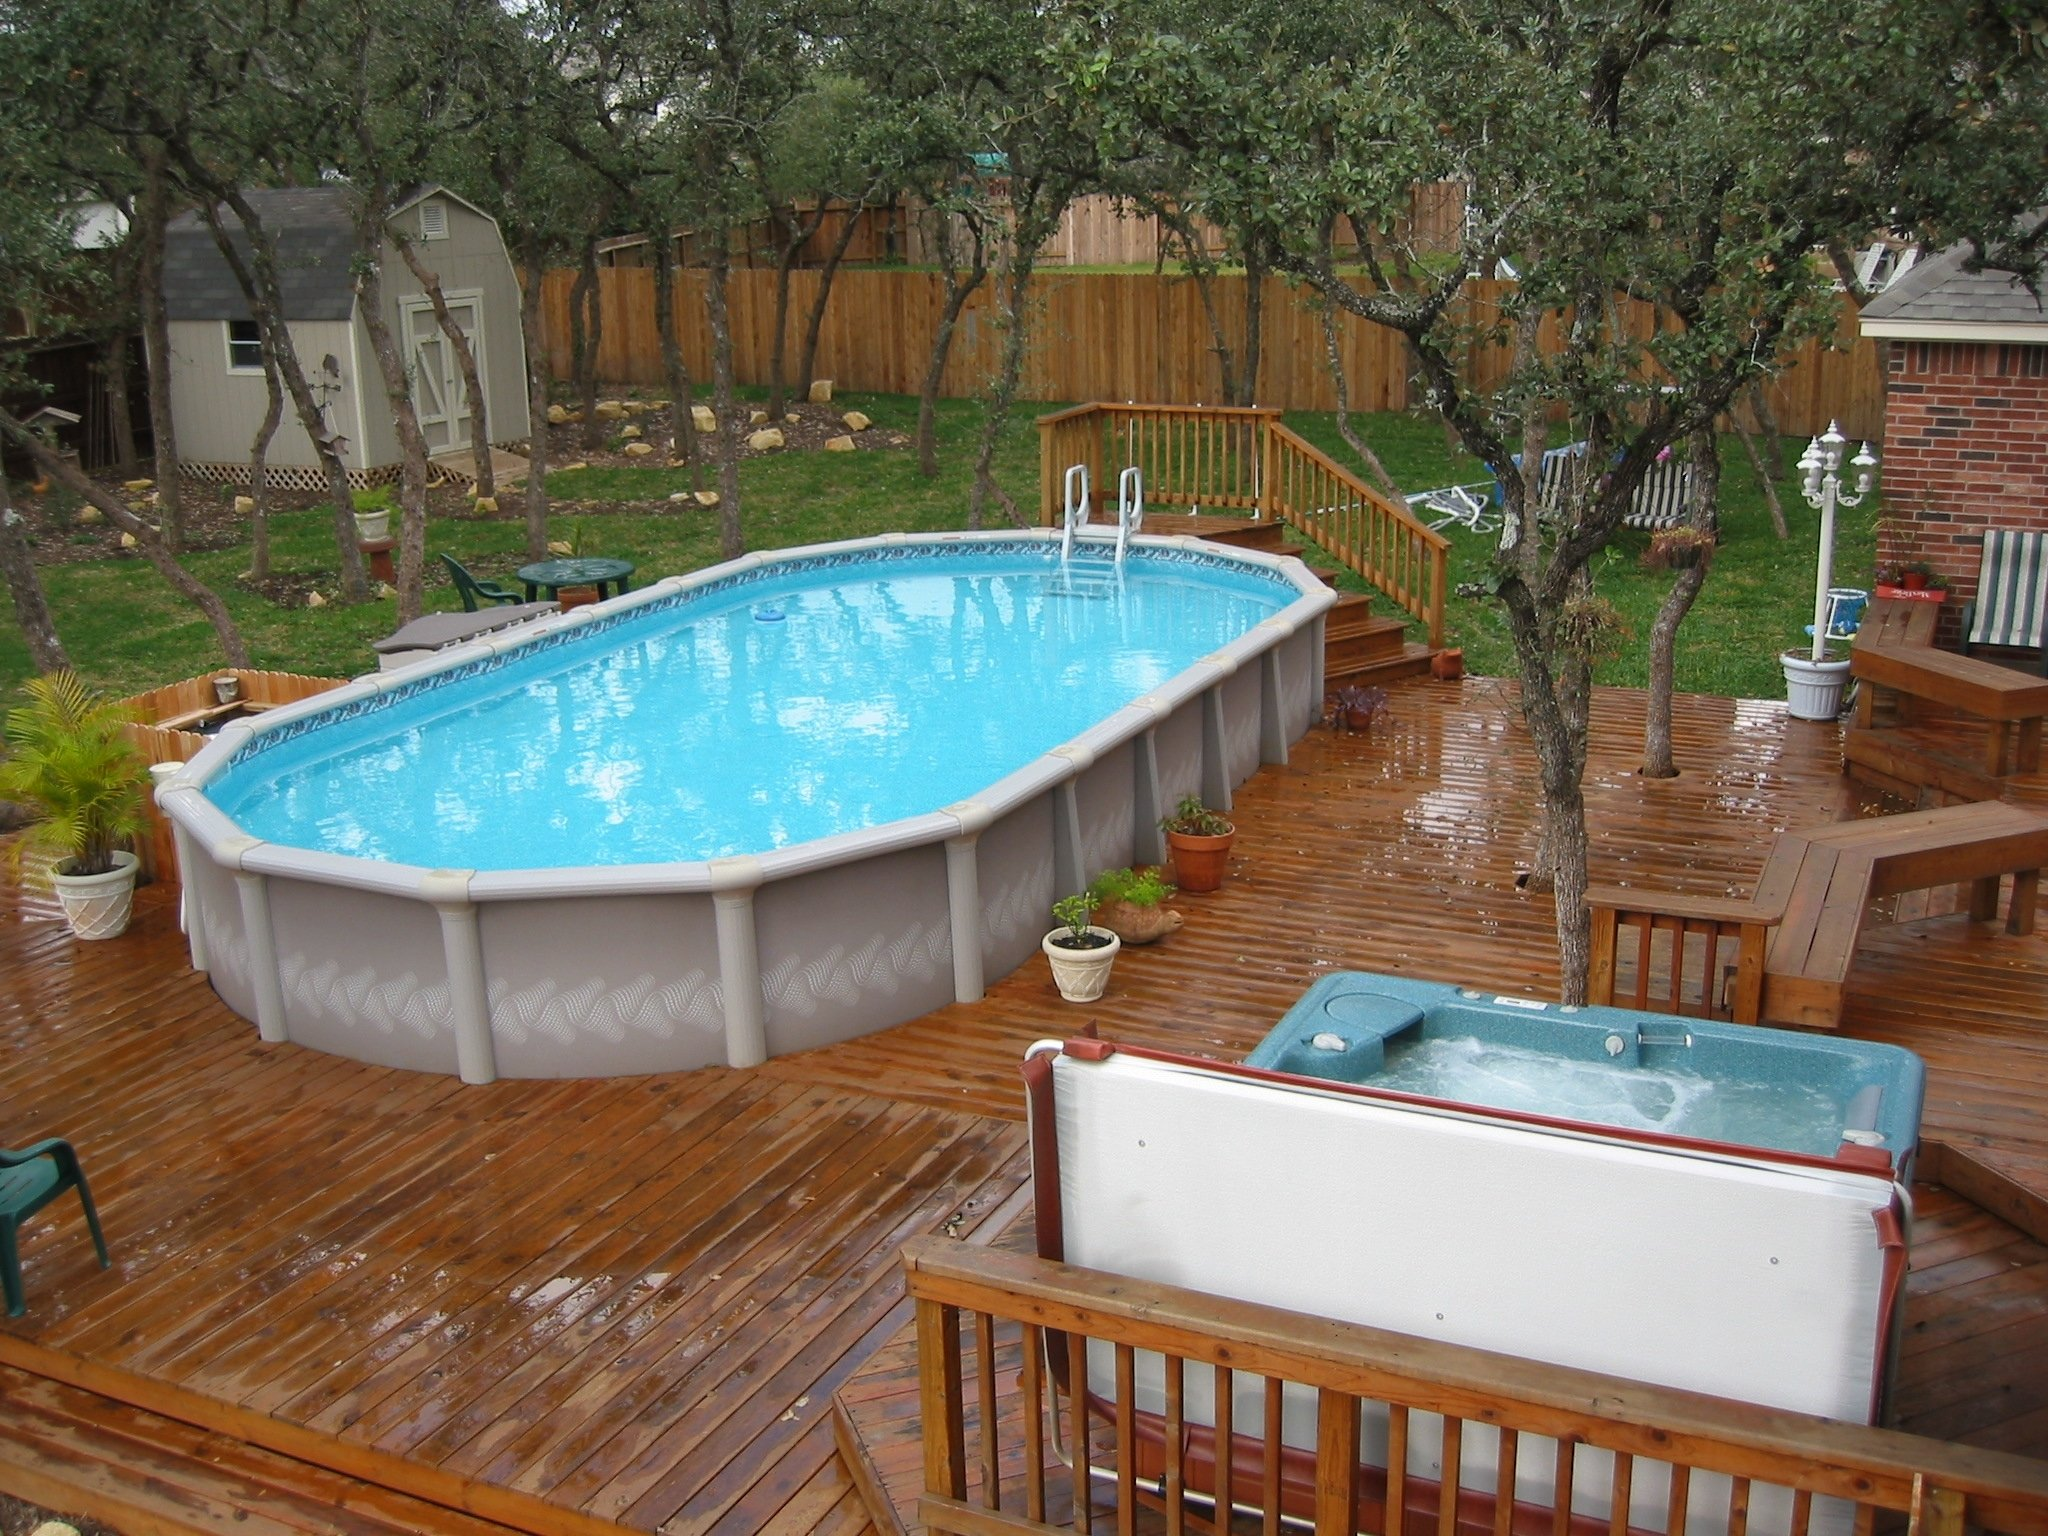 10 Trendy Deck Ideas For Above Ground Pools successful pool decking ideas 21 the best above ground pools with 2021